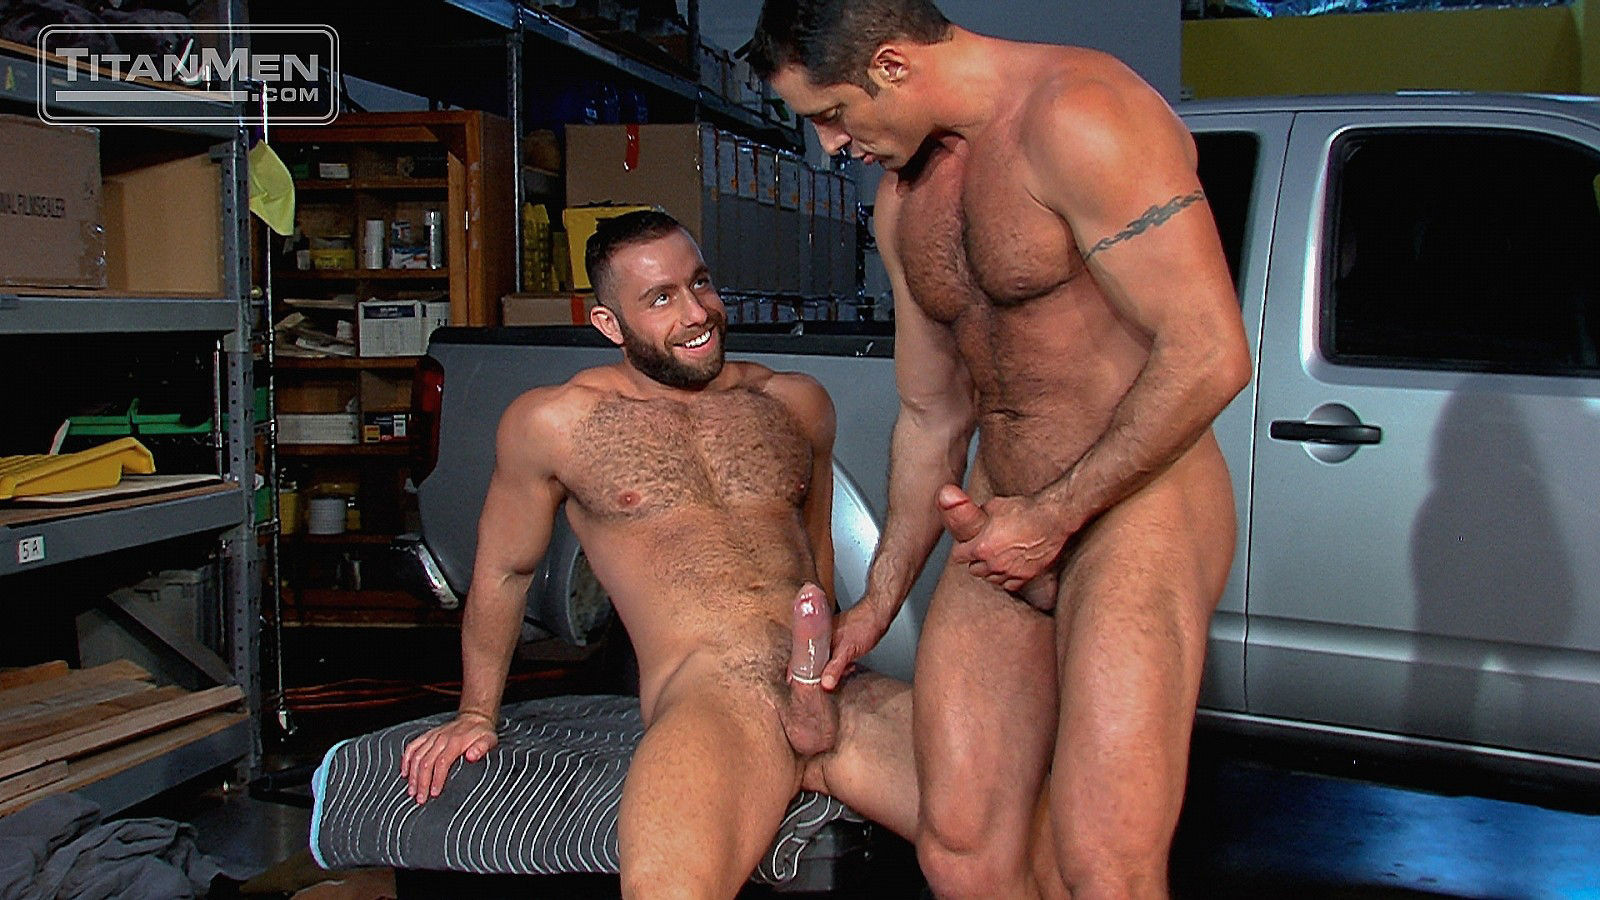 from Ephraim gay free vod blog